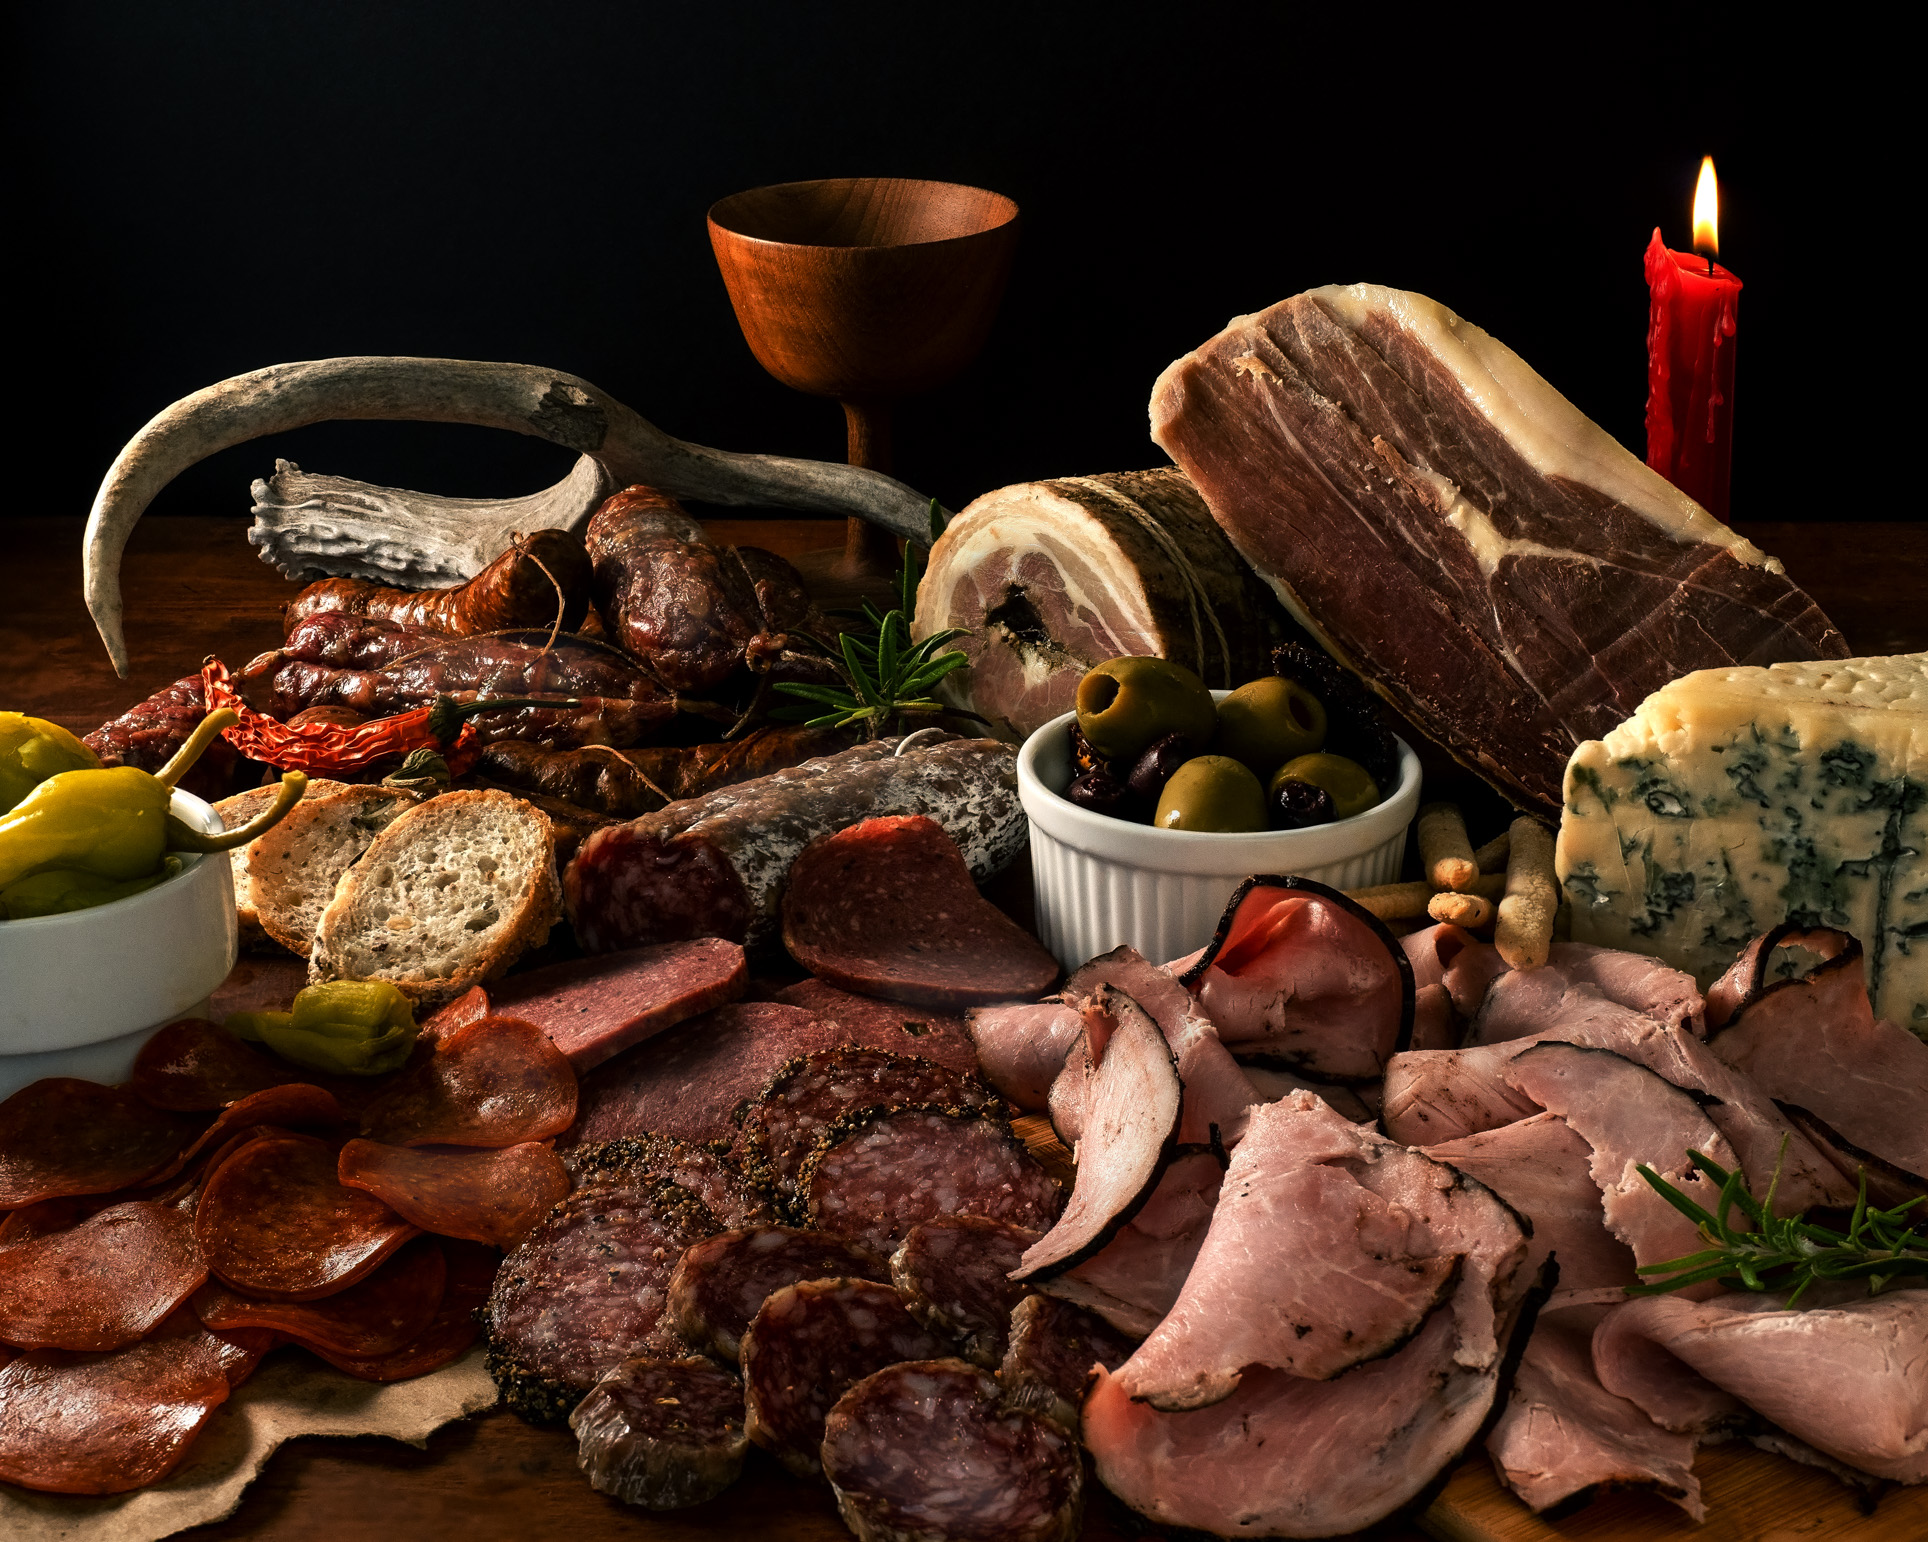 Charcuterie with Meats